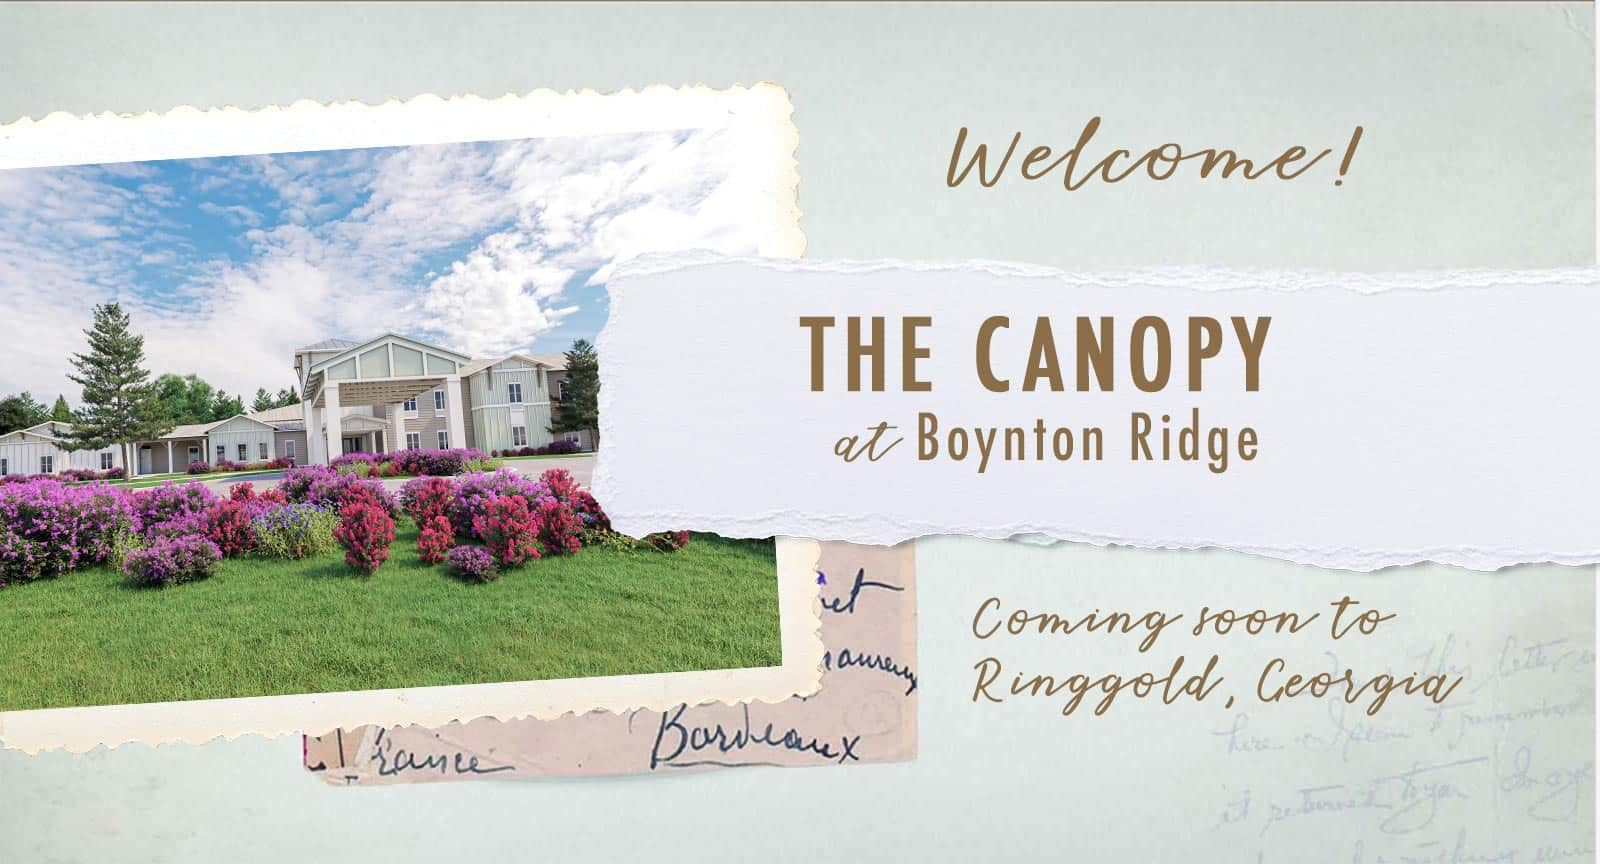 Welcome to The Canopy at Boynton Ridge, an assisted living and memory care community coming soon to Ringgold Georgia